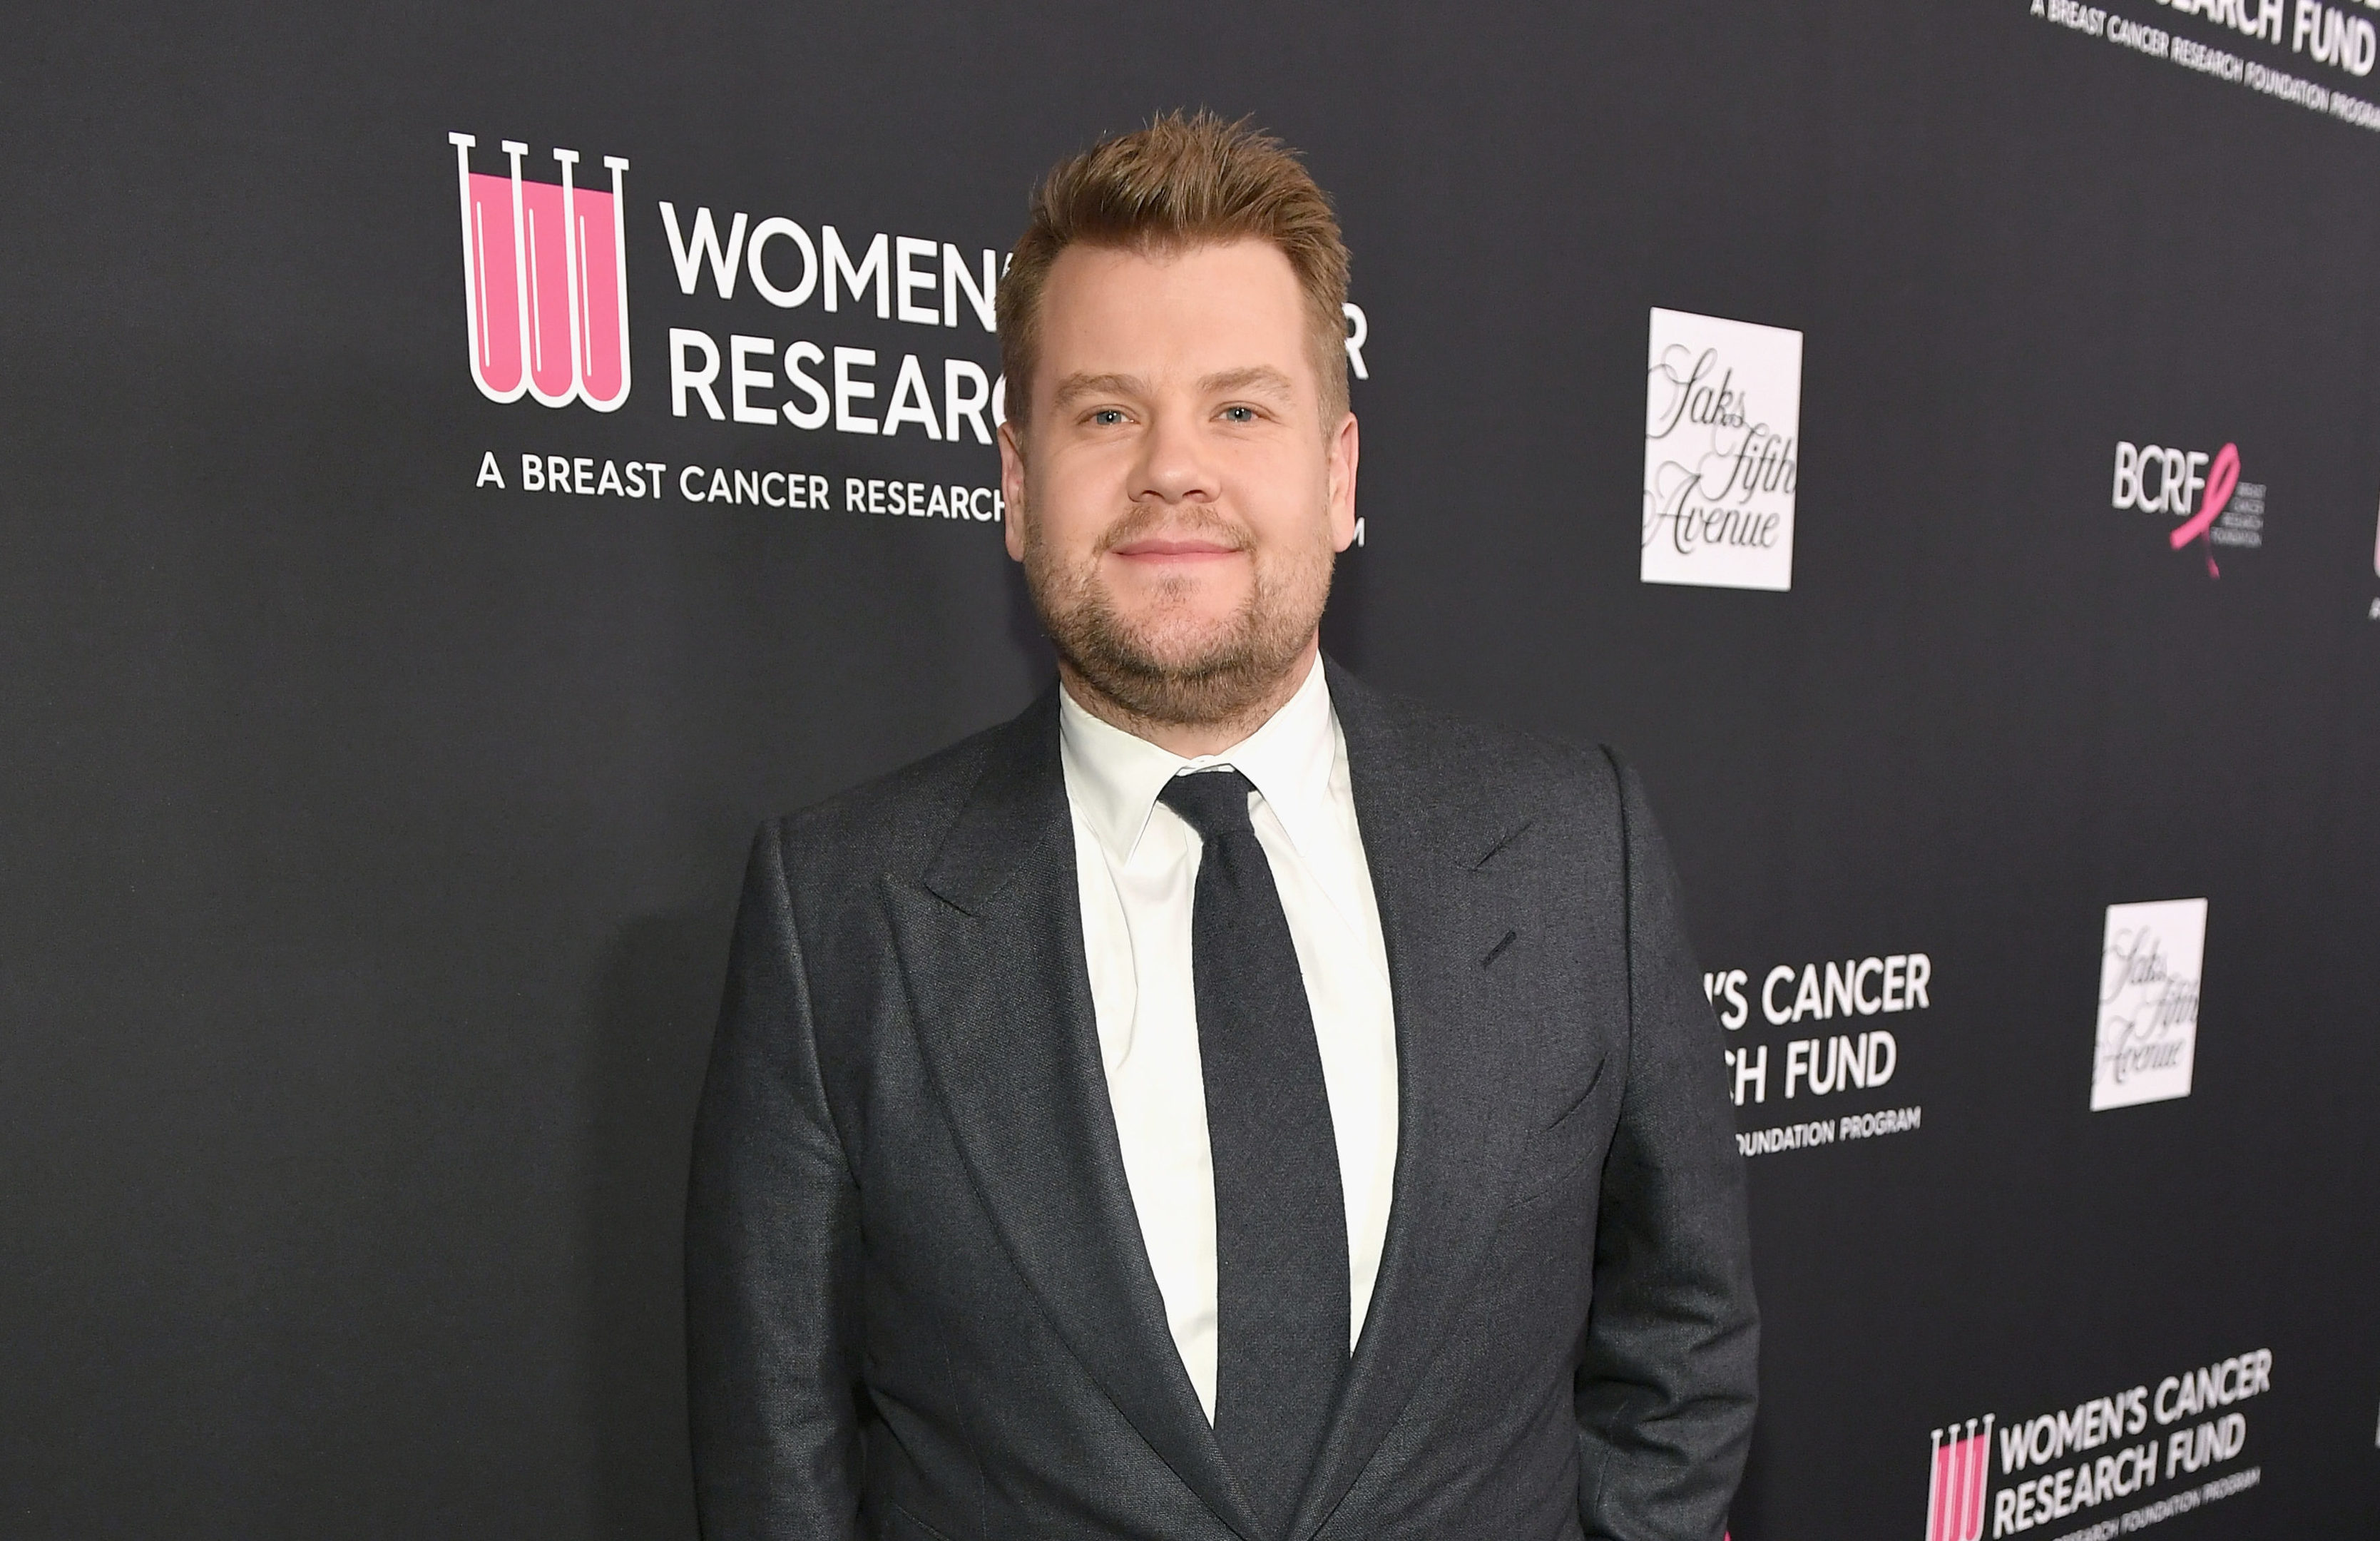 James Corden (Neilson Barnard/Getty Images for WCRF)